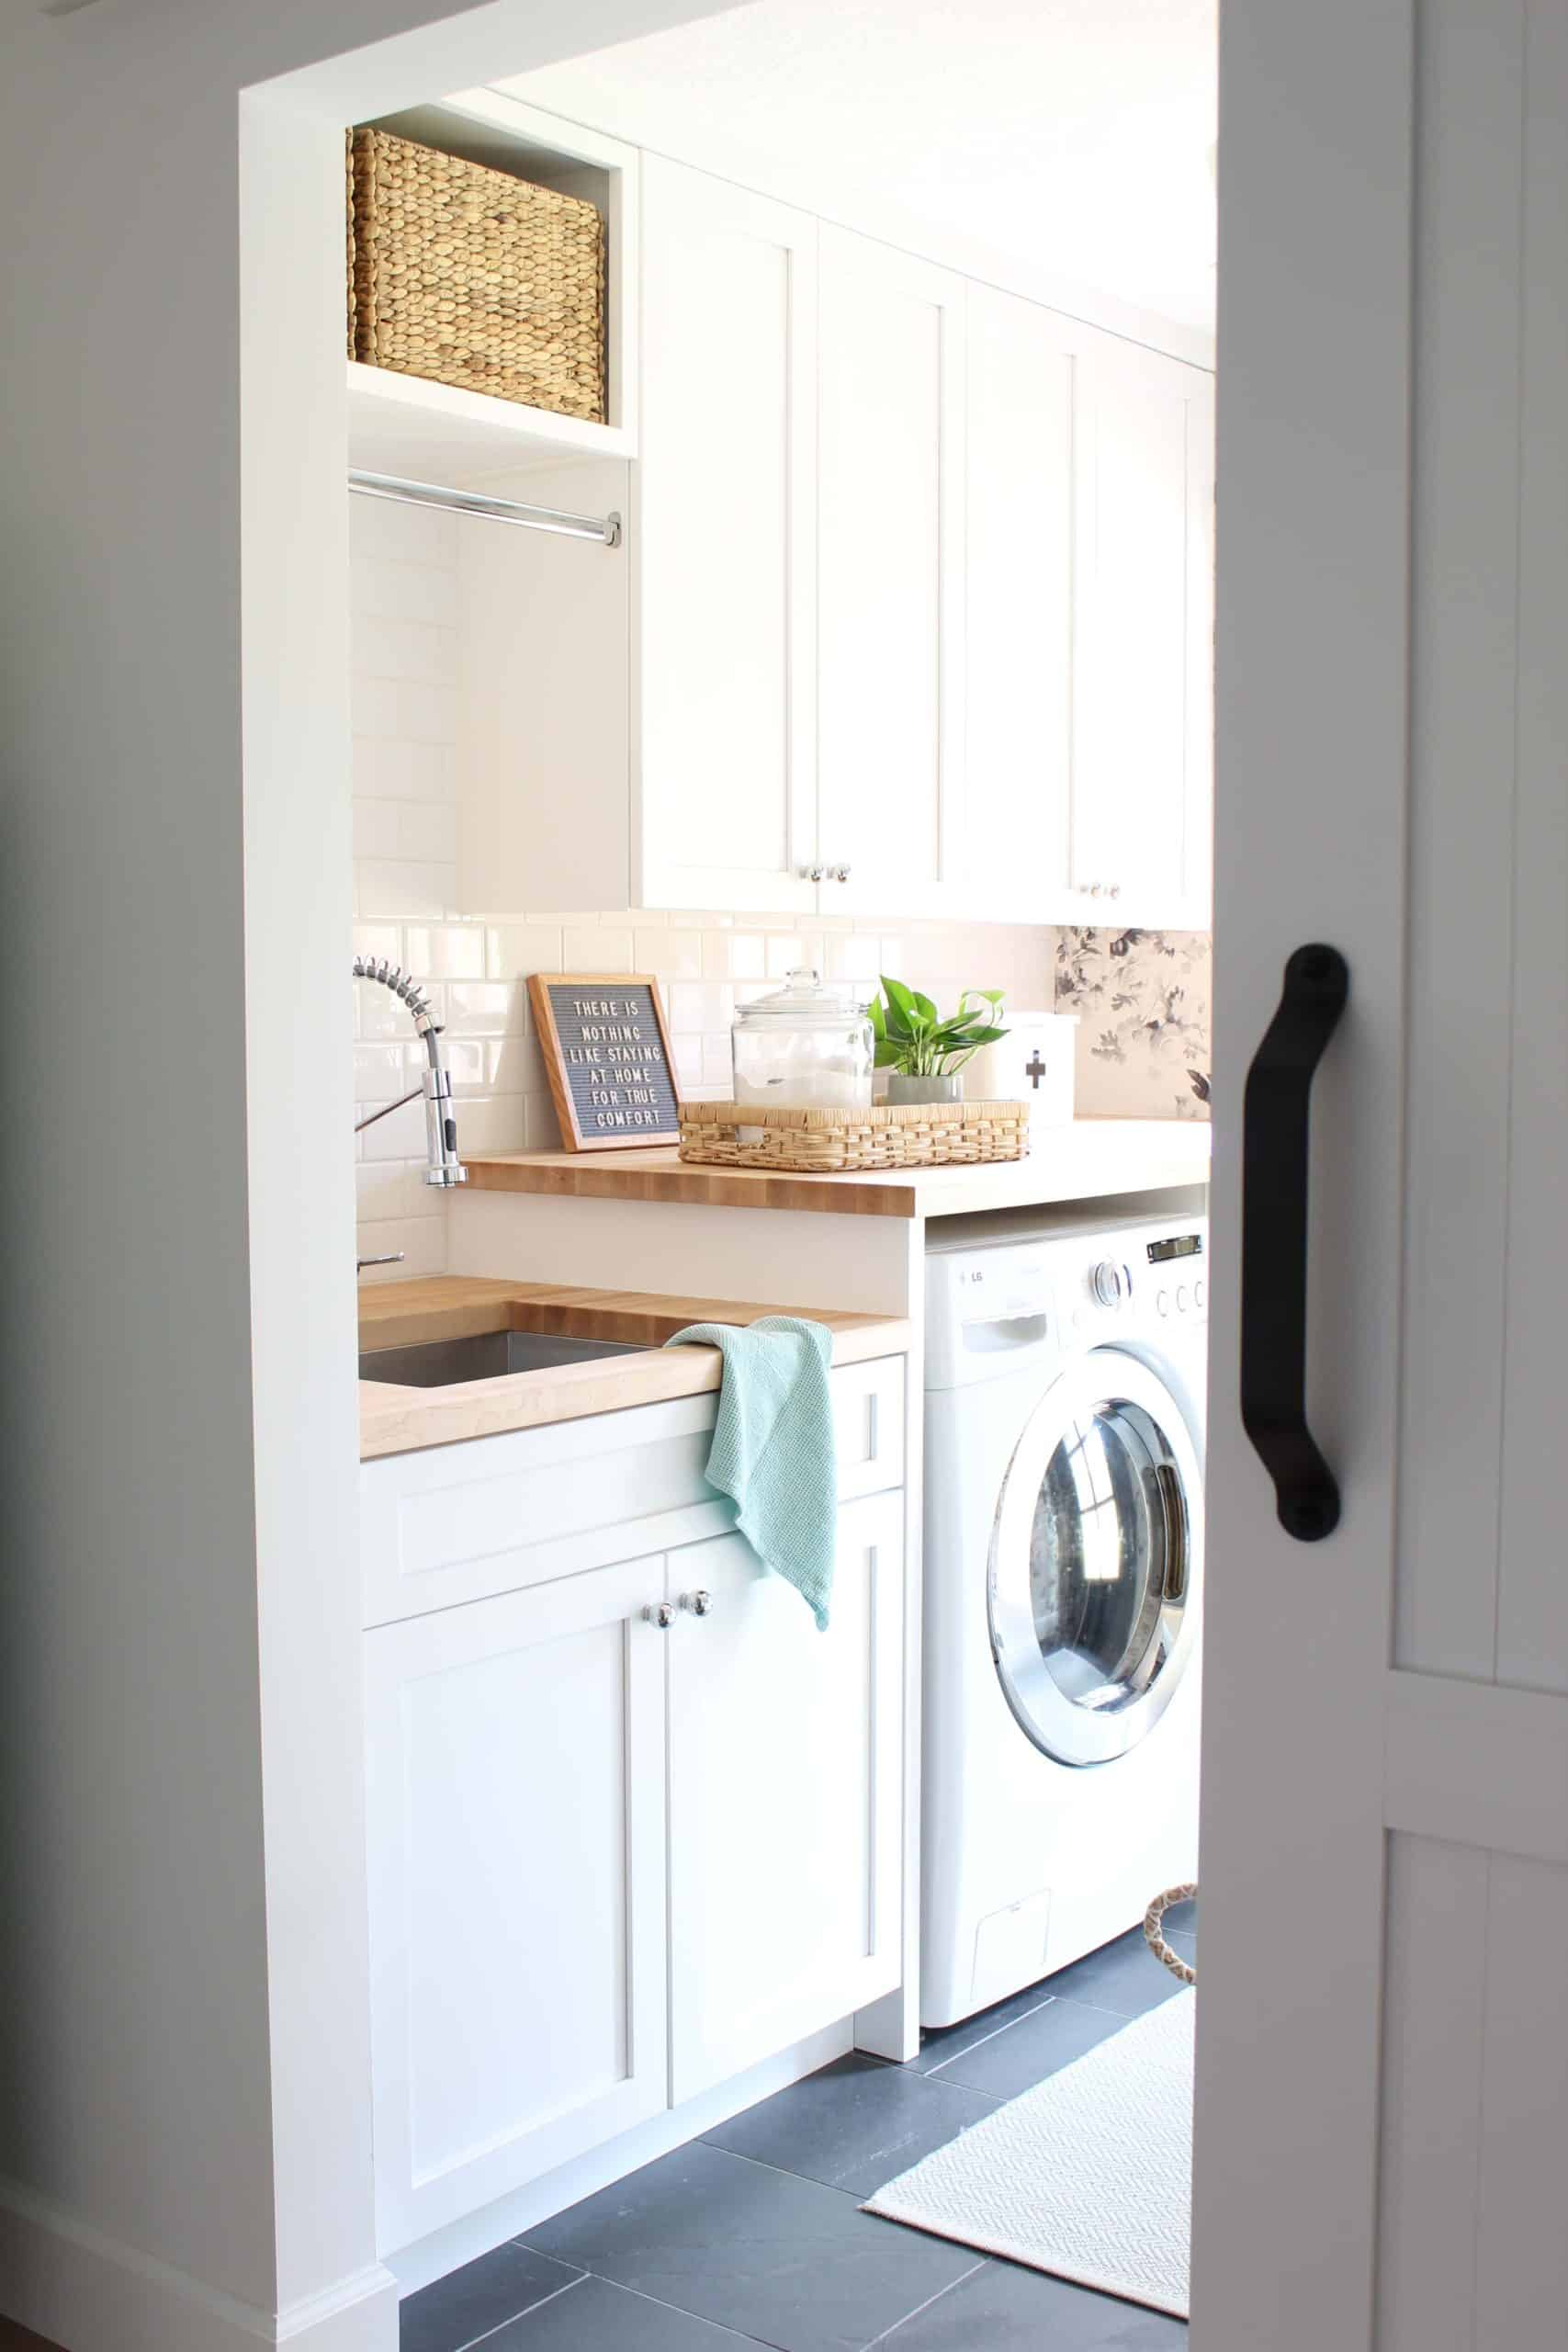 house of hackney smoky rose wallpaper, laundry room with butcher block counter tops, laundry room with slate tile floor, laundry room with two different height countertops, laundry room with white shaker cabinets